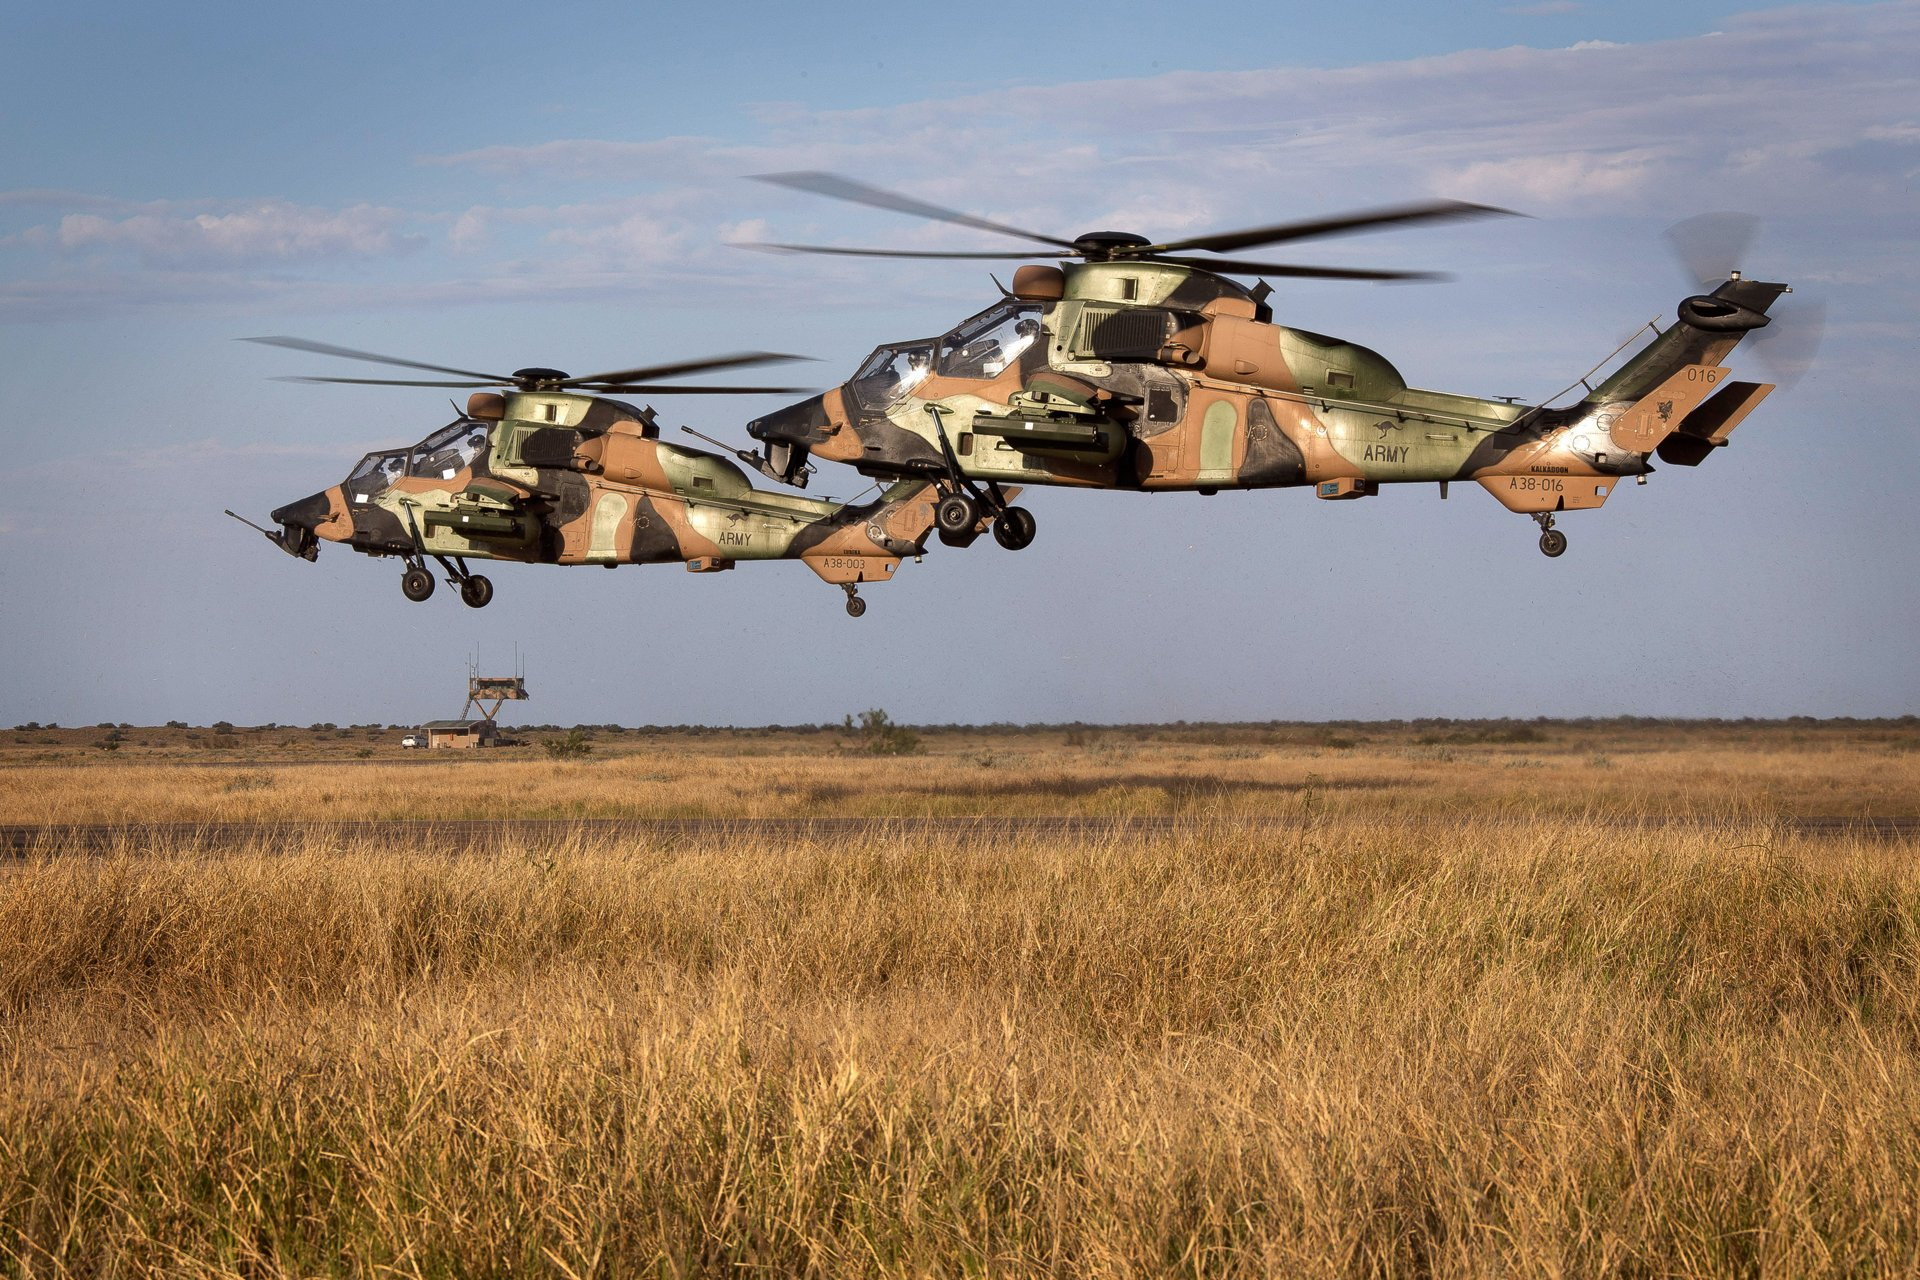 Tiger Armed Reconnaissance Helicopters land at RAAF Learmonth after conducting security operations during an Exercise Northern Shield scenario. *** Local Caption *** Tiger Armed Reconnaissance Helicopters (ARH) have arrived in Exmouth, Western Australia on Exercise Northern Shield to assist the Ready Combat Team (RCT) conduct security operations in the region.